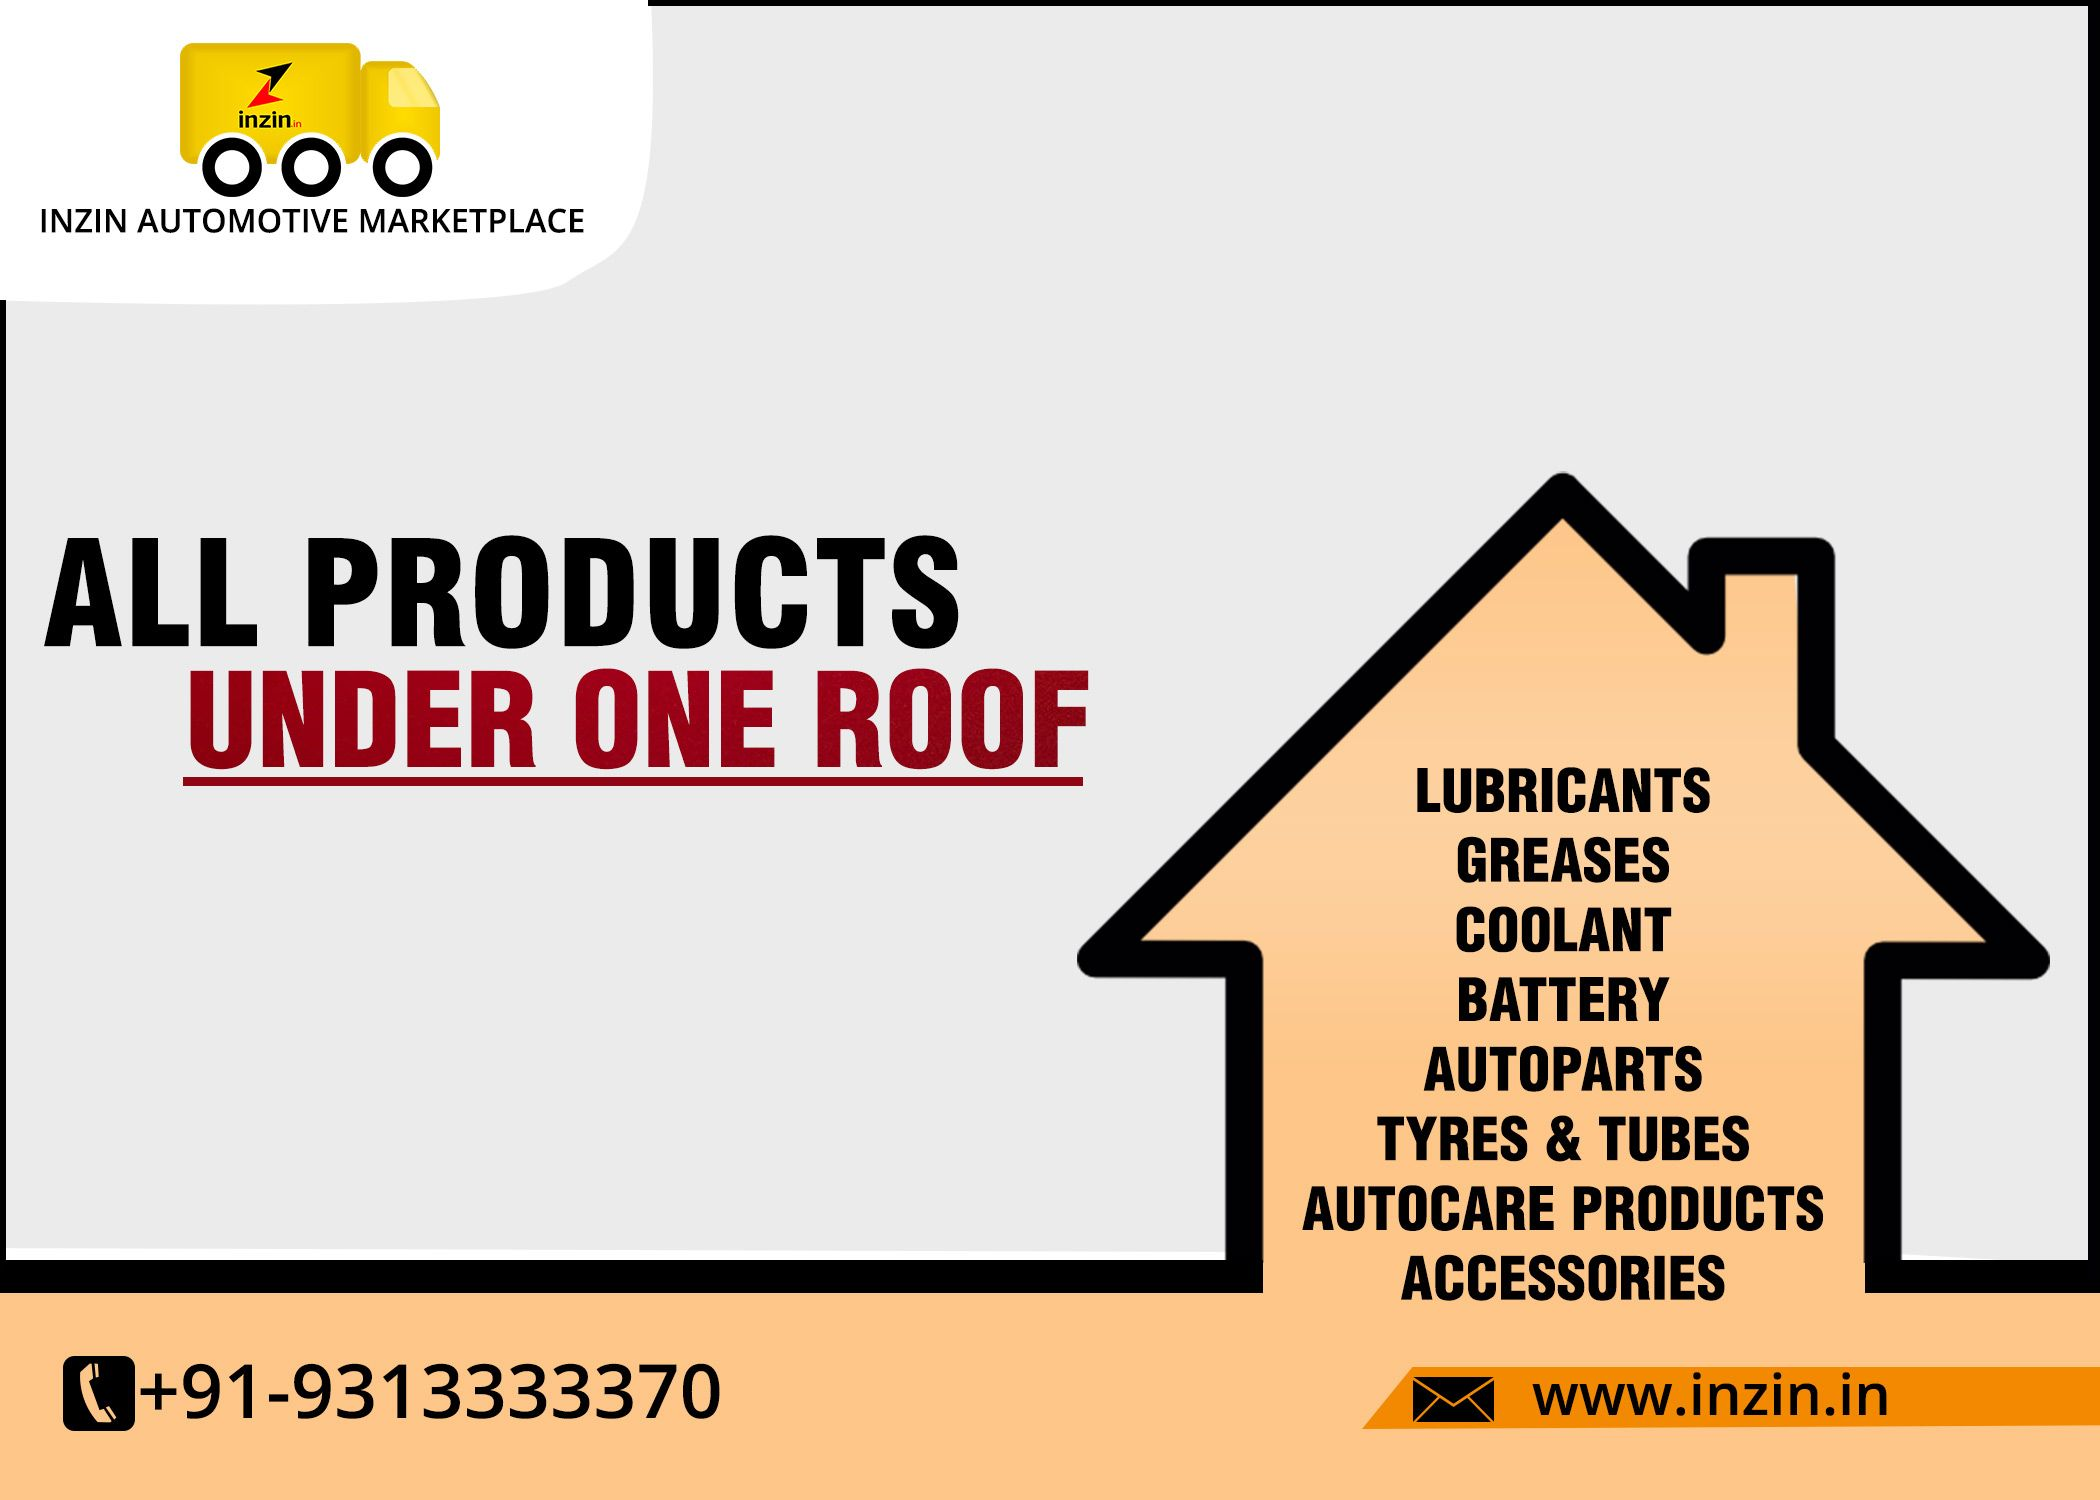 All Product Under One Roof Like Lubricants Grease